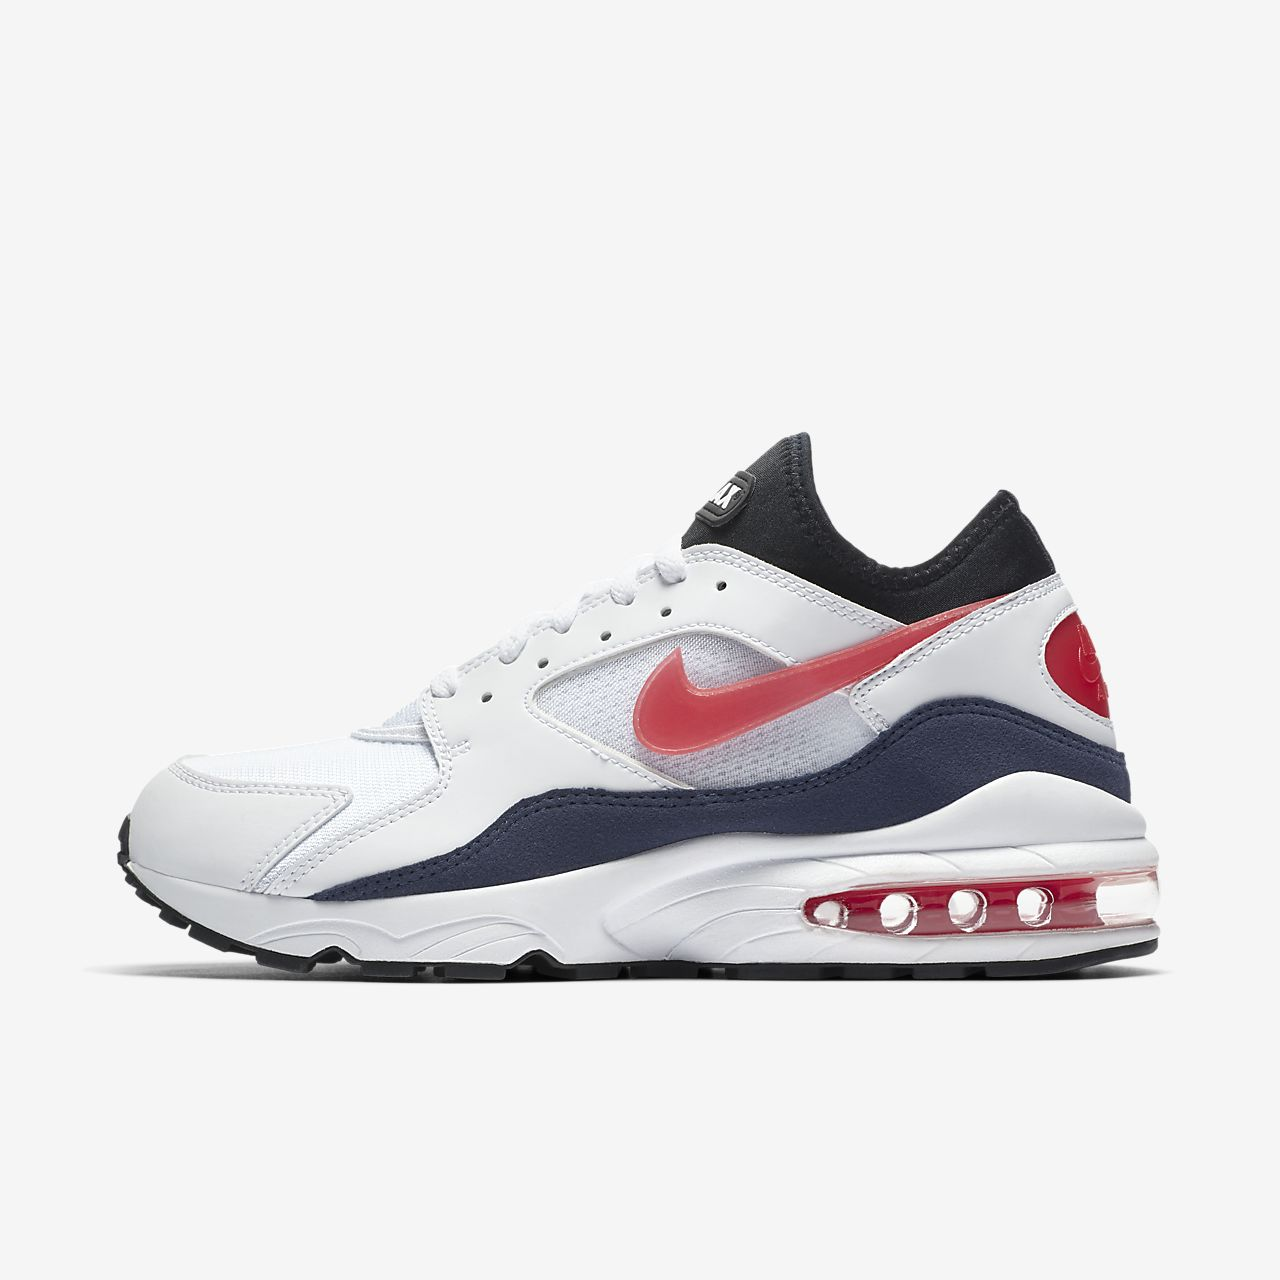 93 Nike Chaussure Homme Air Max Pour paFwxBA